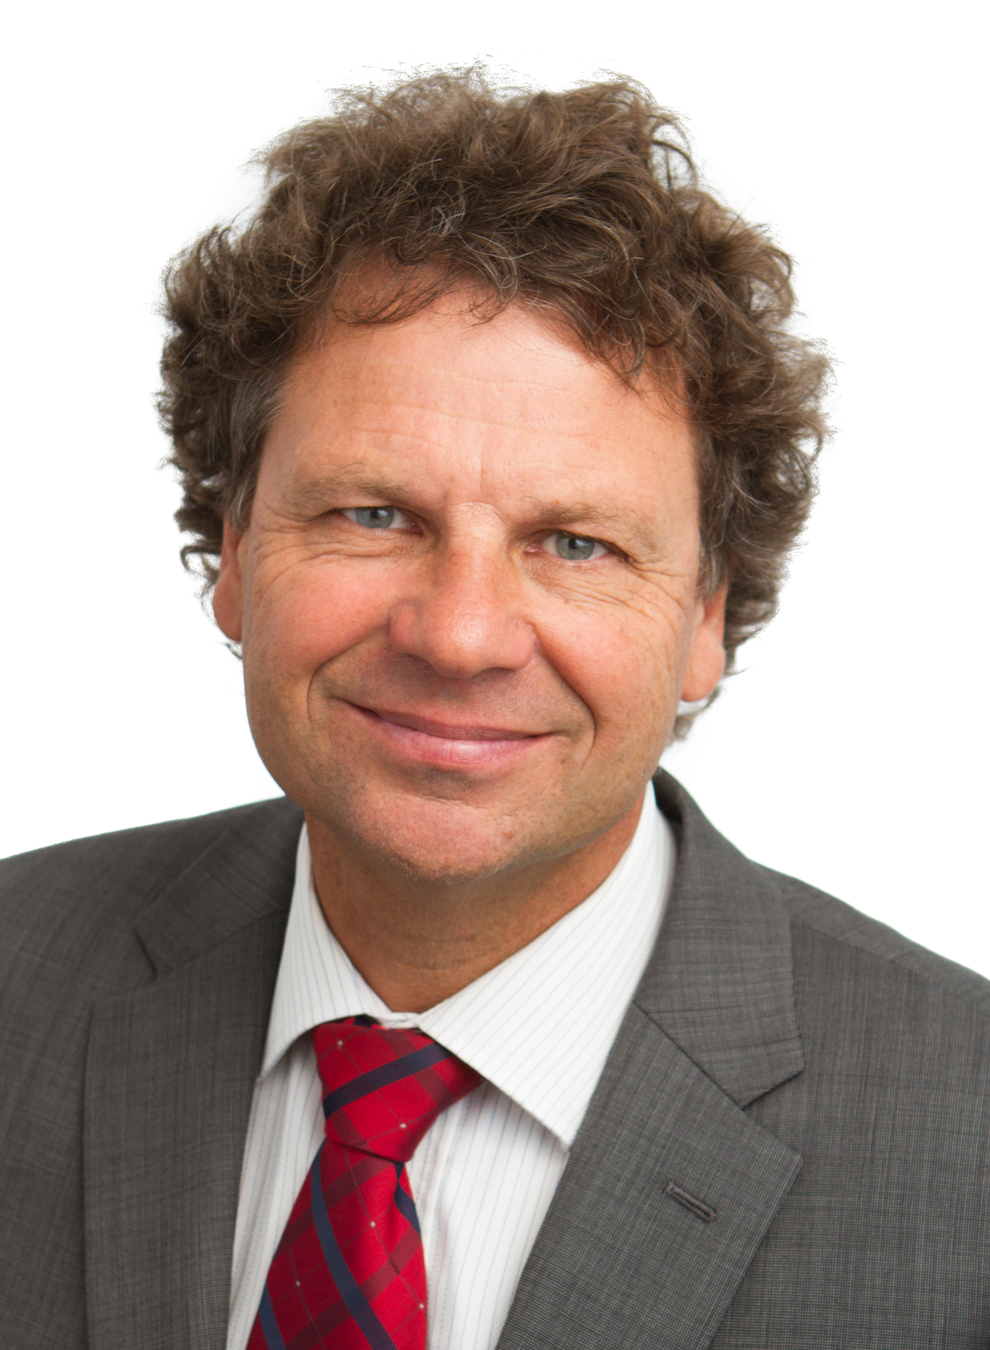 Portrait image of Simon McKeon AO.